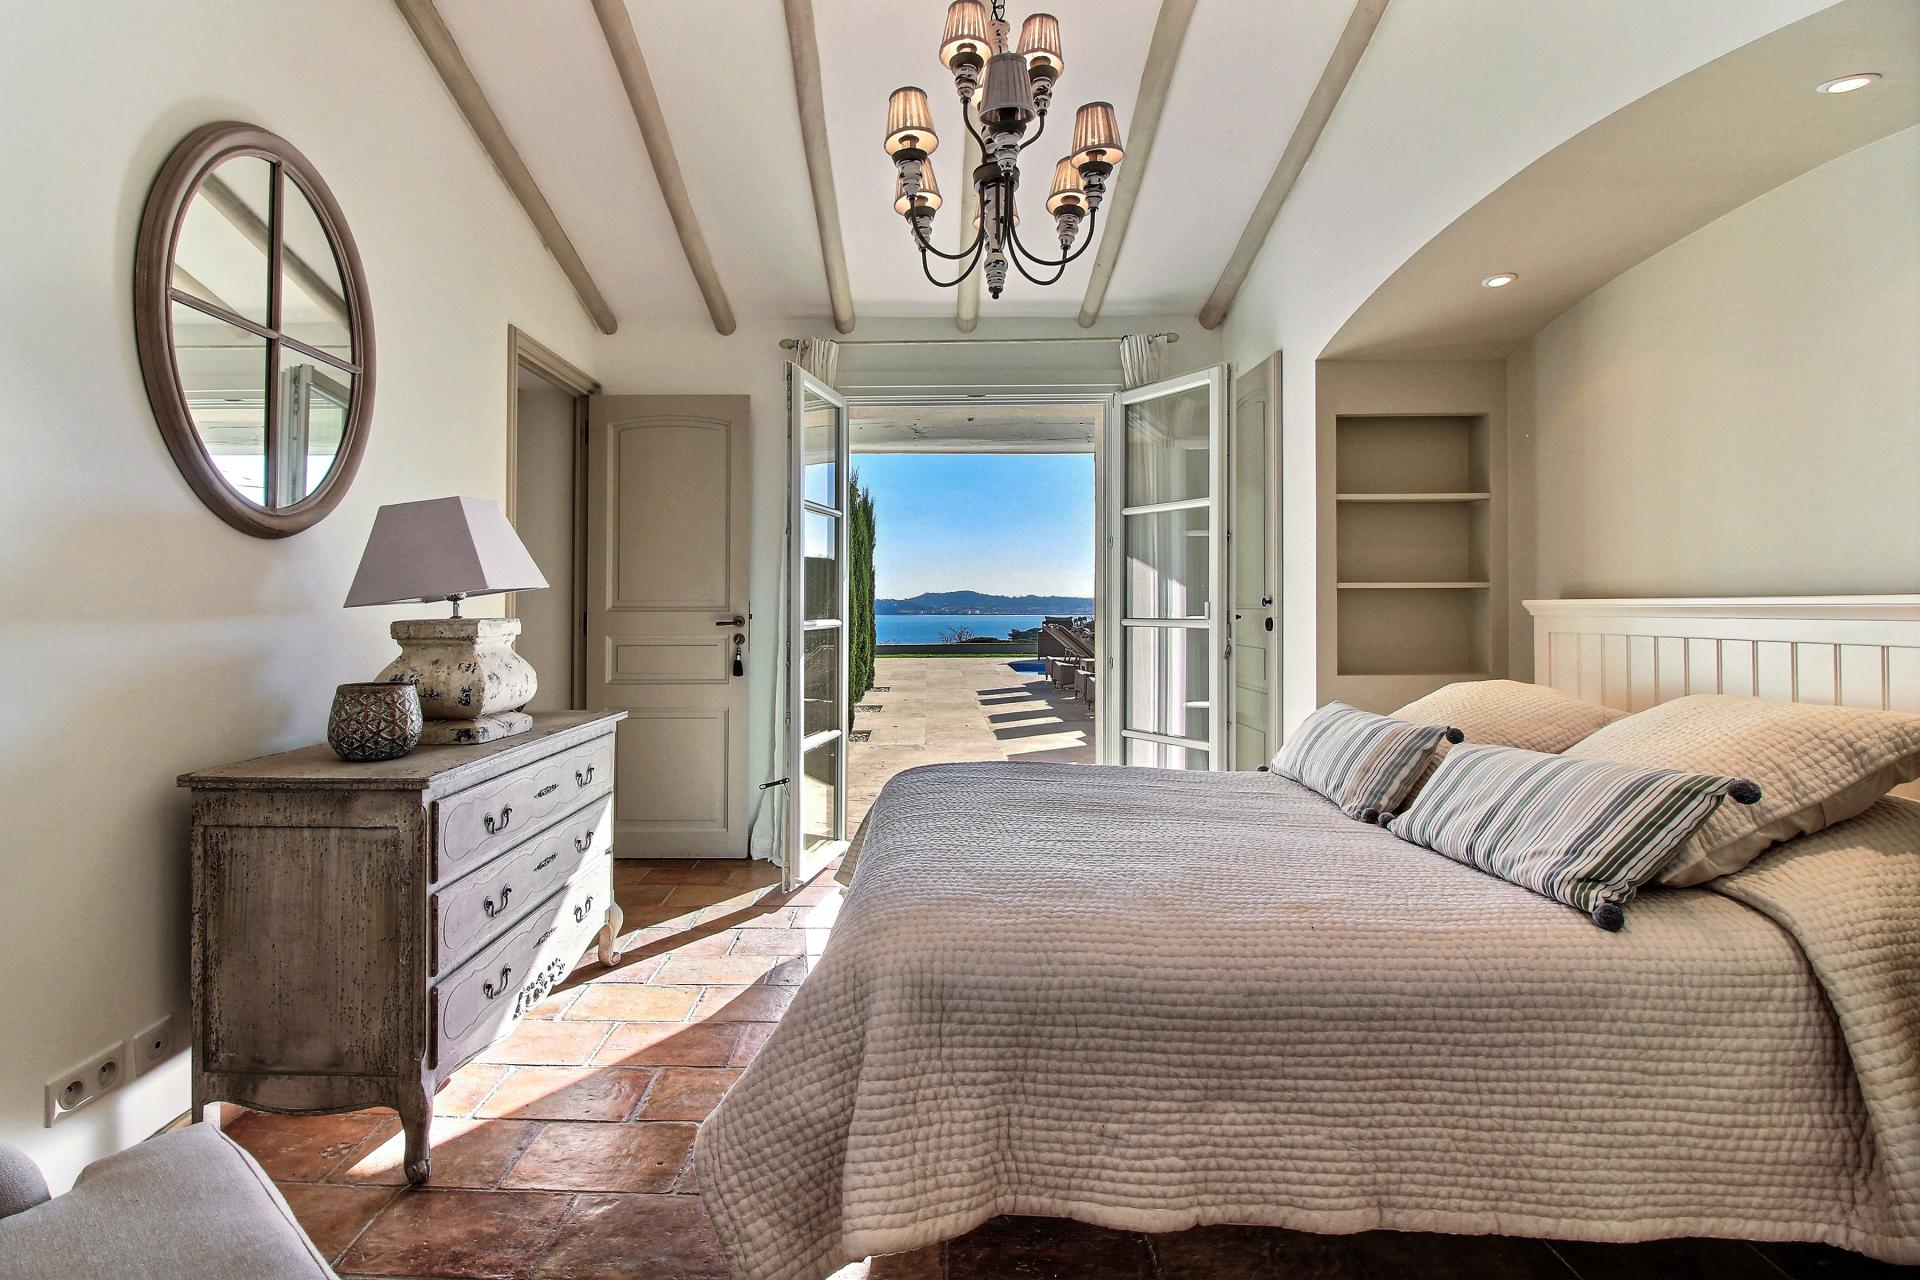 Bedroom 1 with sea view